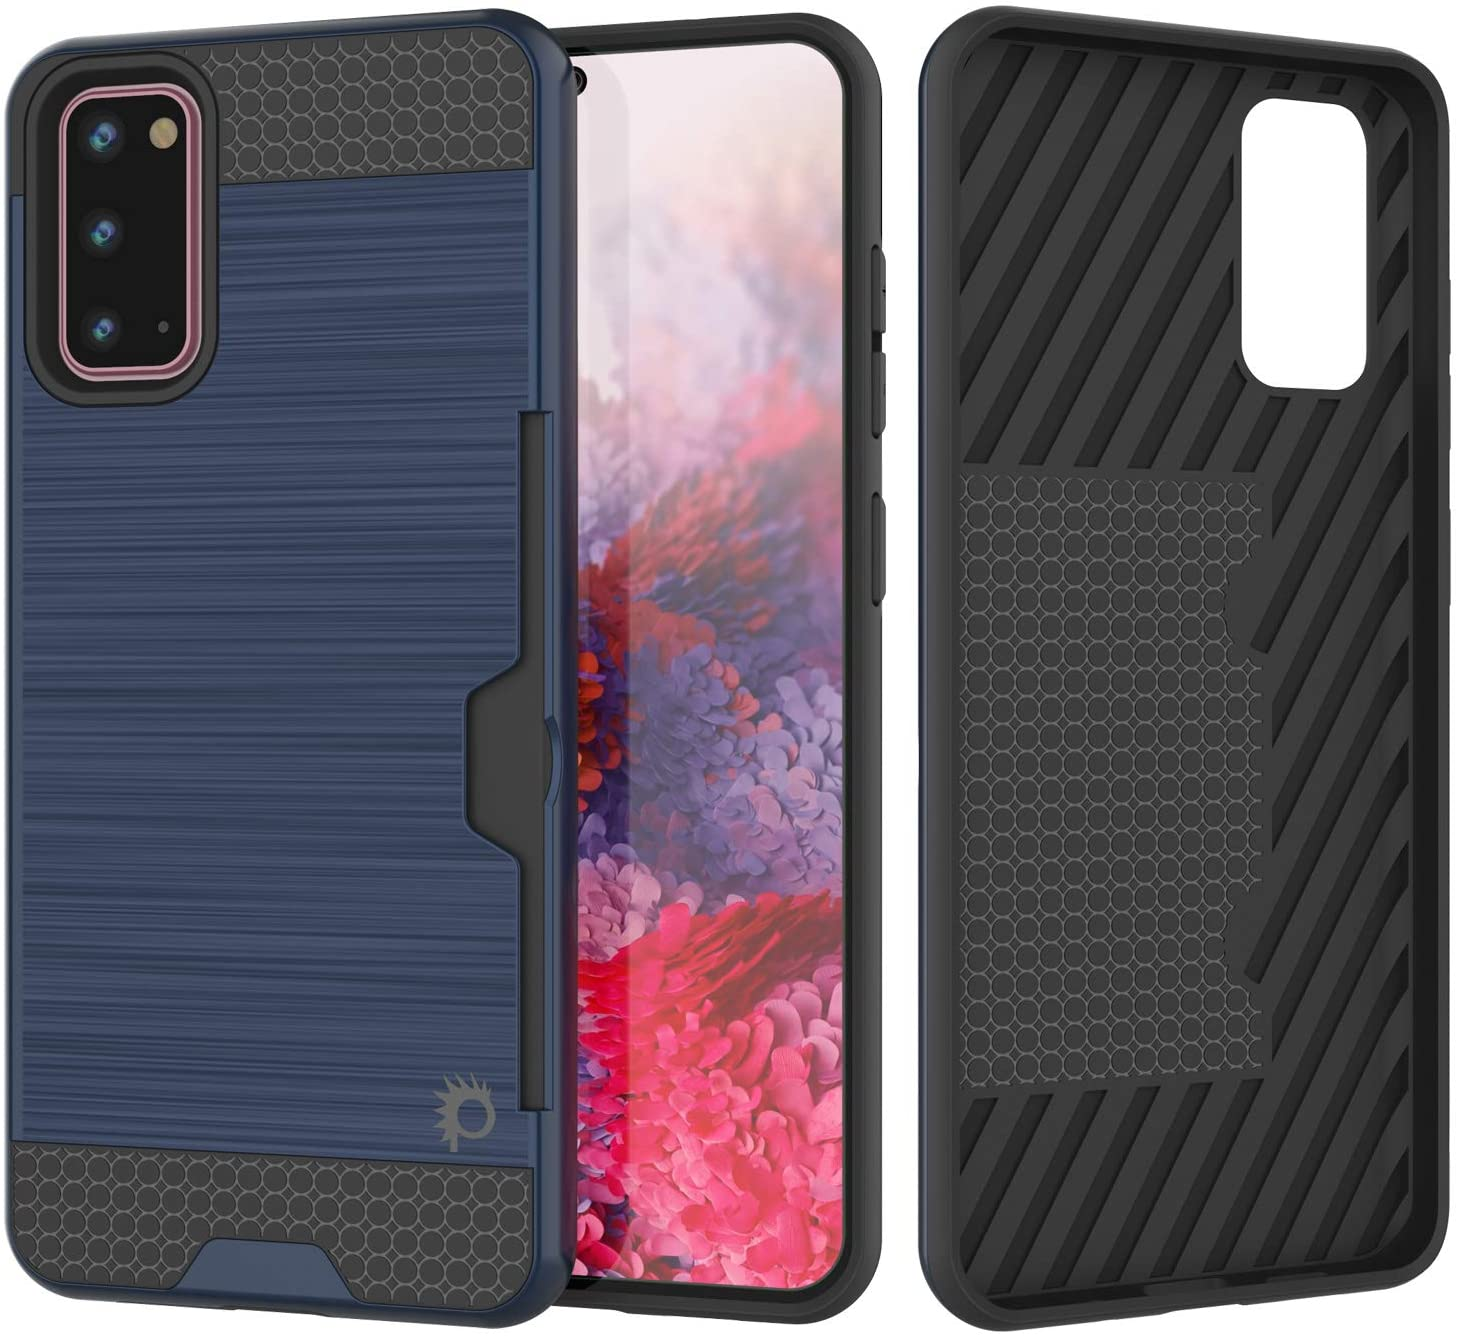 Galaxy S20 Case, PUNKcase [SLOT Series] [Slim Fit] Dual-Layer Armor Cover w/Integrated Anti-Shock System, Credit Card Slot [Navy]